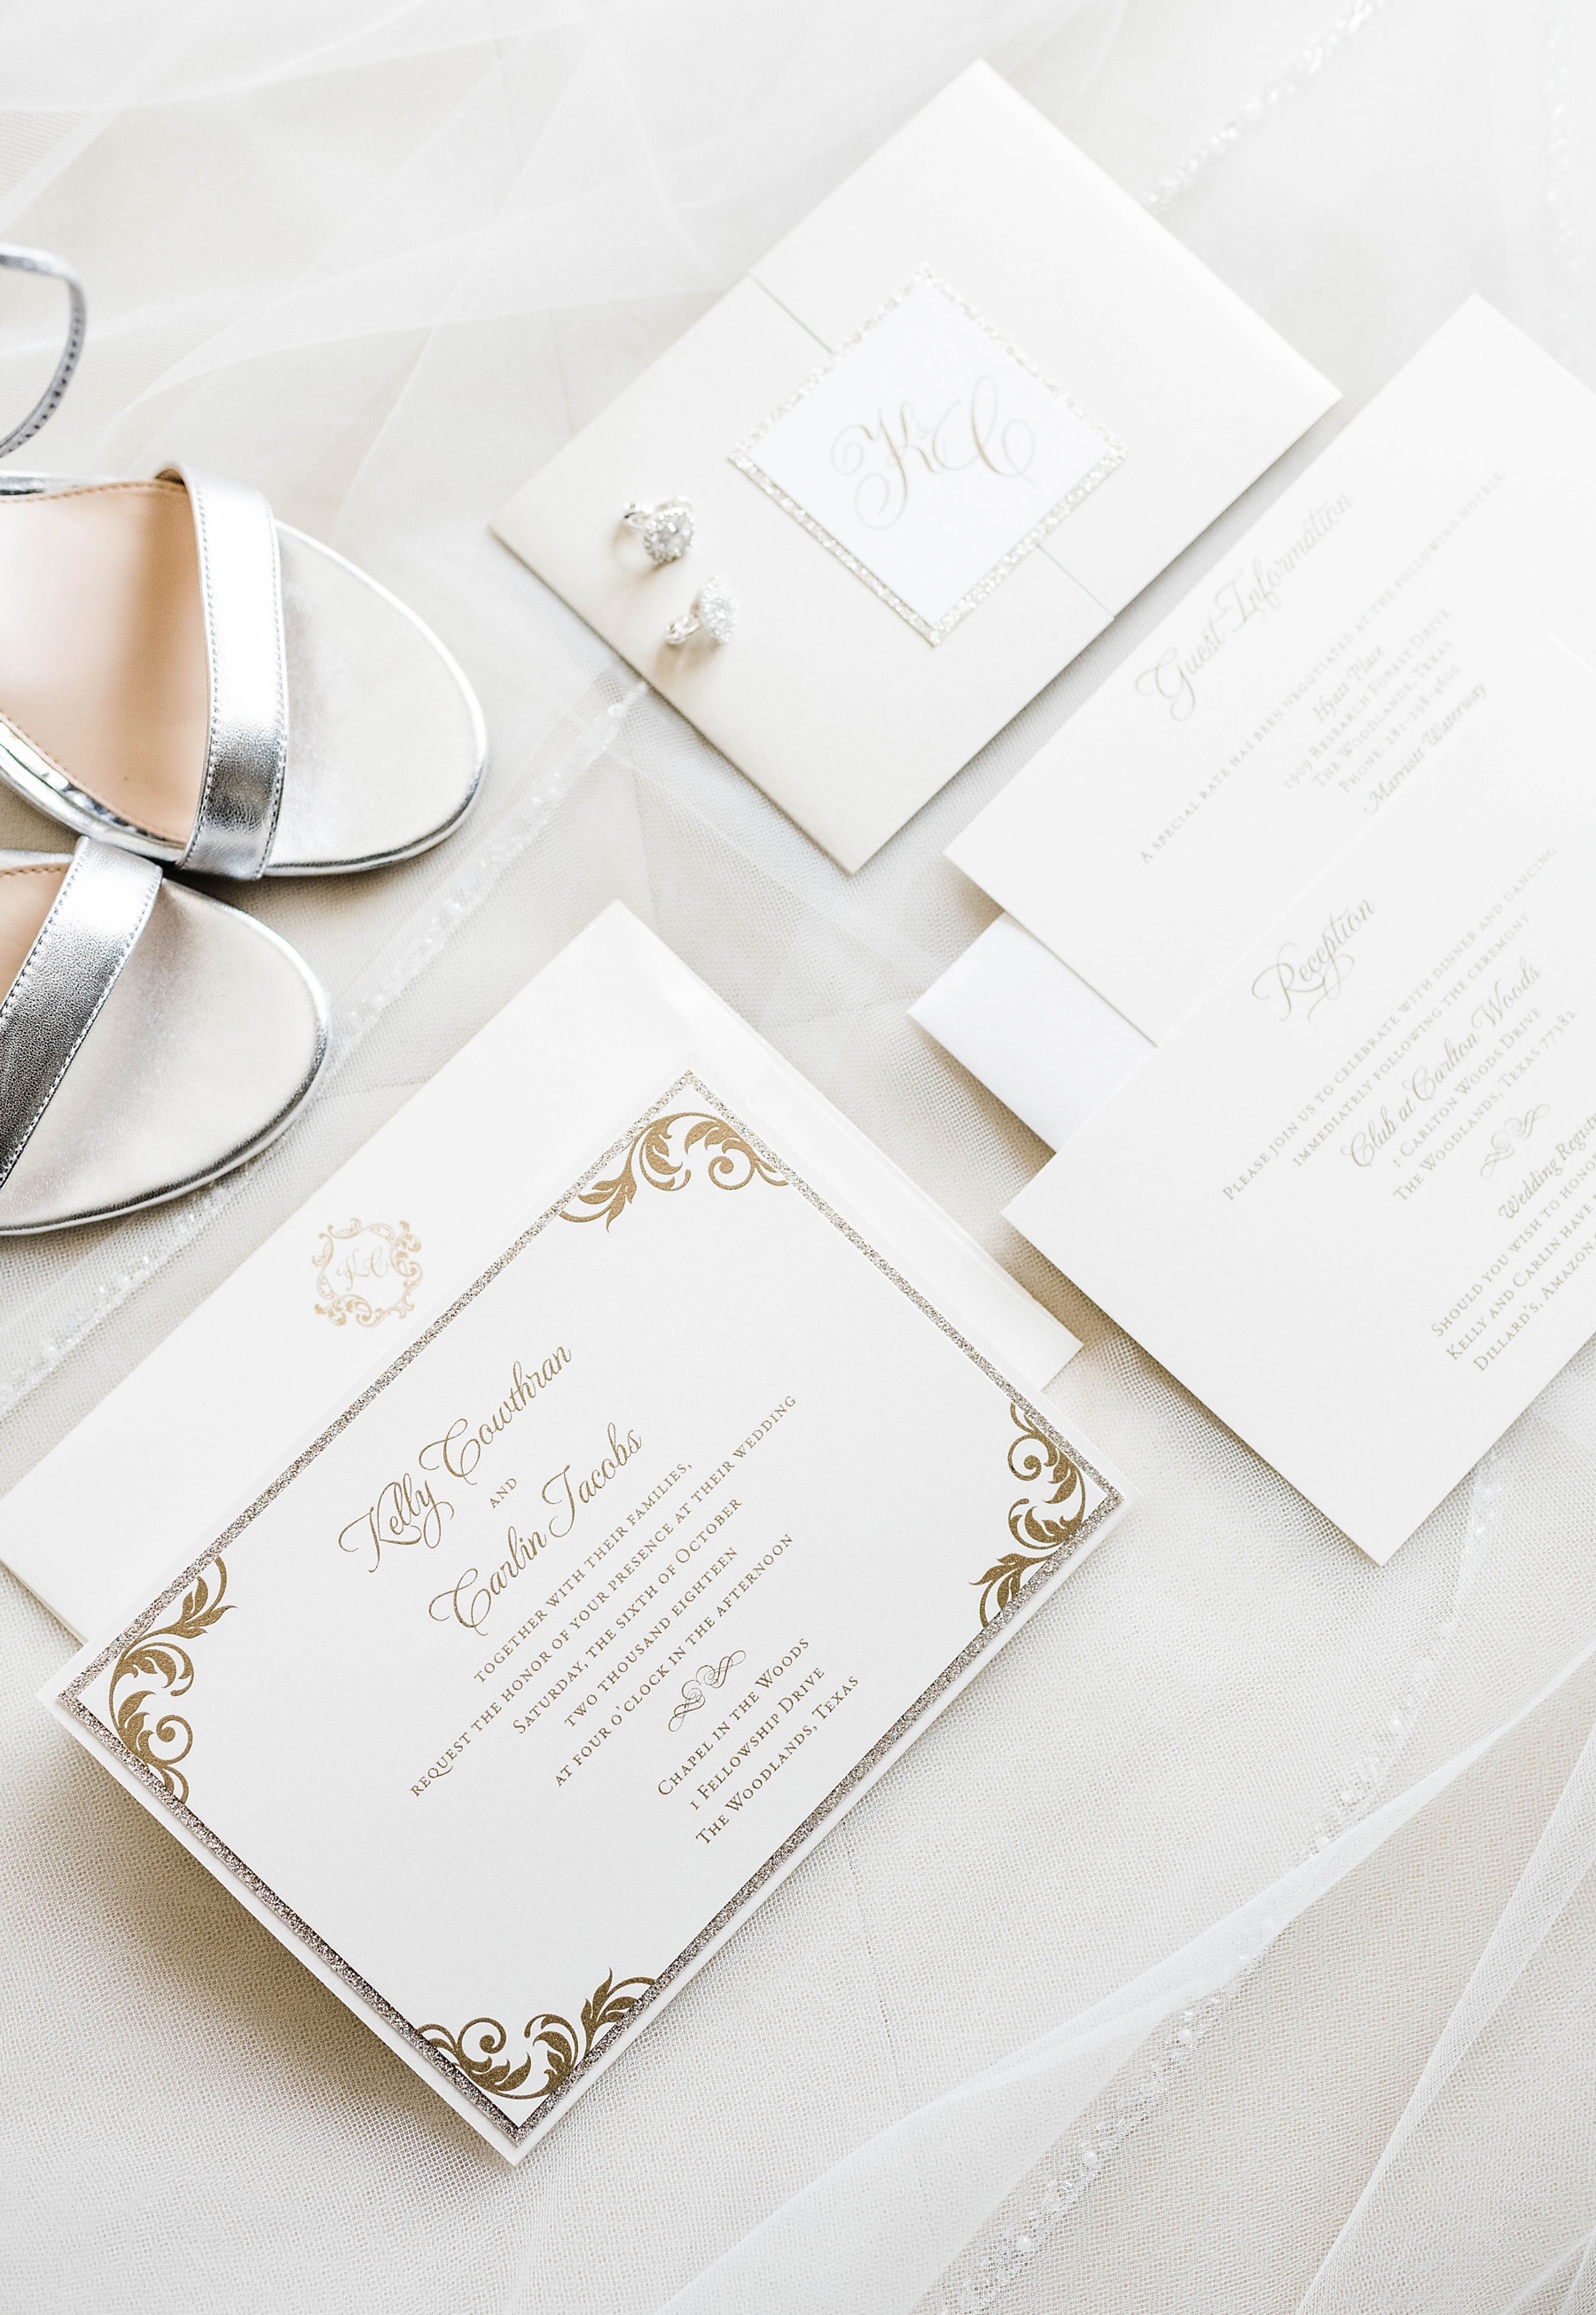 ivory wedding stationary suit with gold glitter border design and gold calligraphy